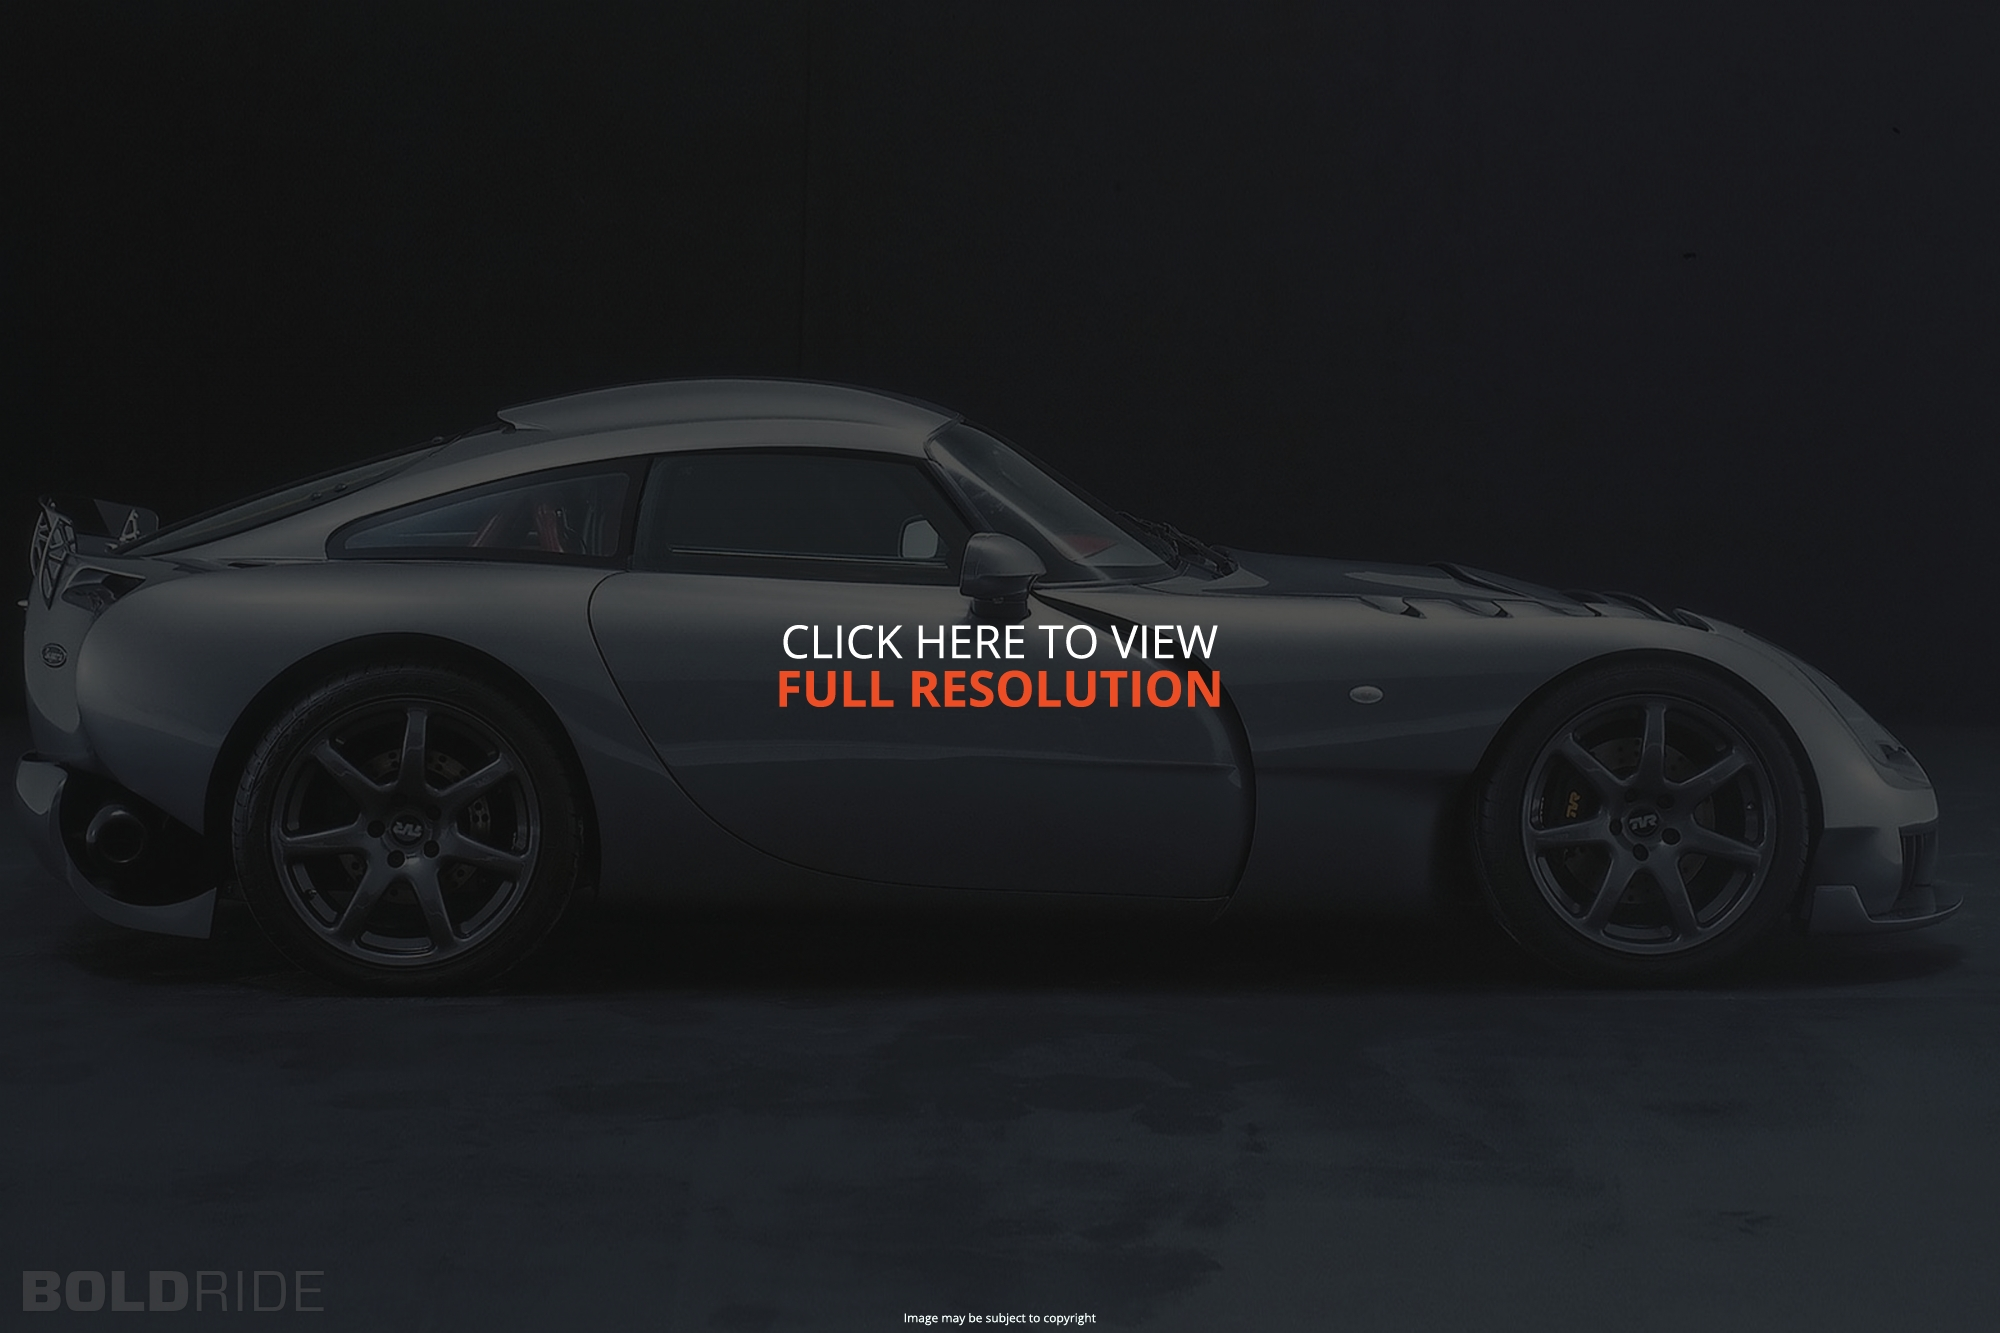 2004 tvr griffith pictures information and specs auto. Black Bedroom Furniture Sets. Home Design Ideas